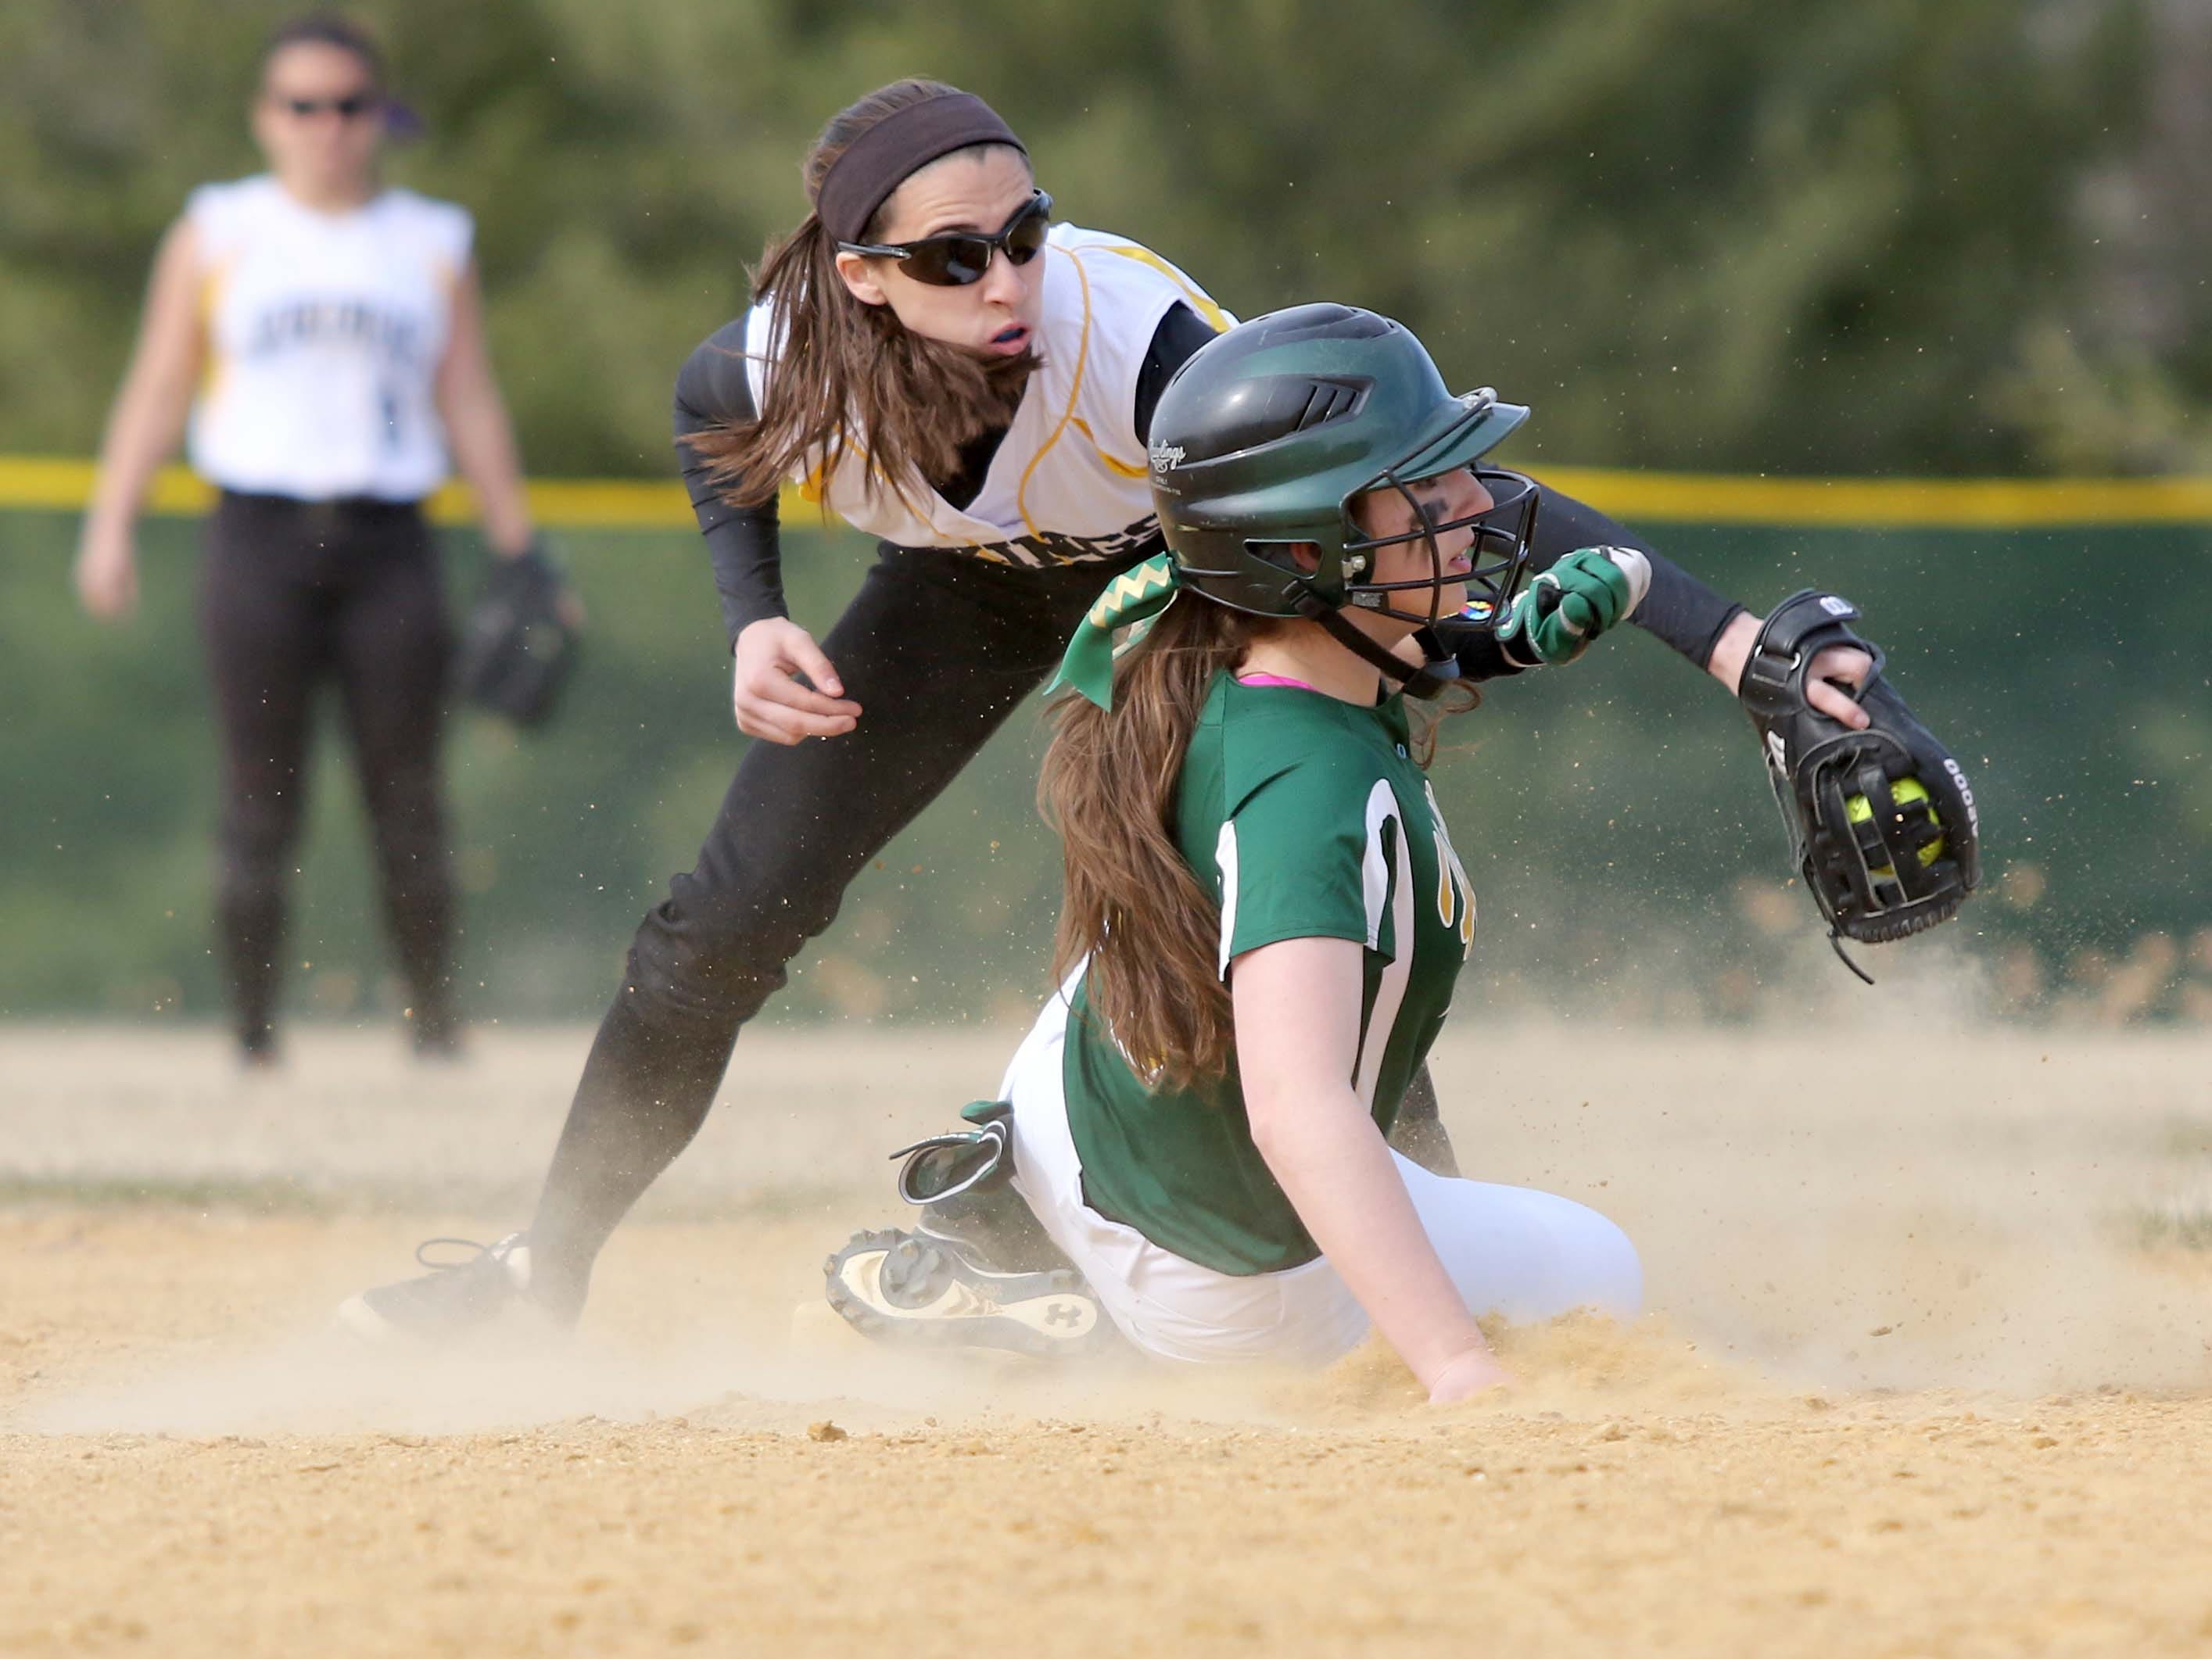 South Brunswick's #1 Carly Rybinski applies a tag on #8 Kayla Smith of J.P. Stevens, at second base, as she tries to steal. High School softball, J.P. Stevens at South Brunswick, April 2, 2015